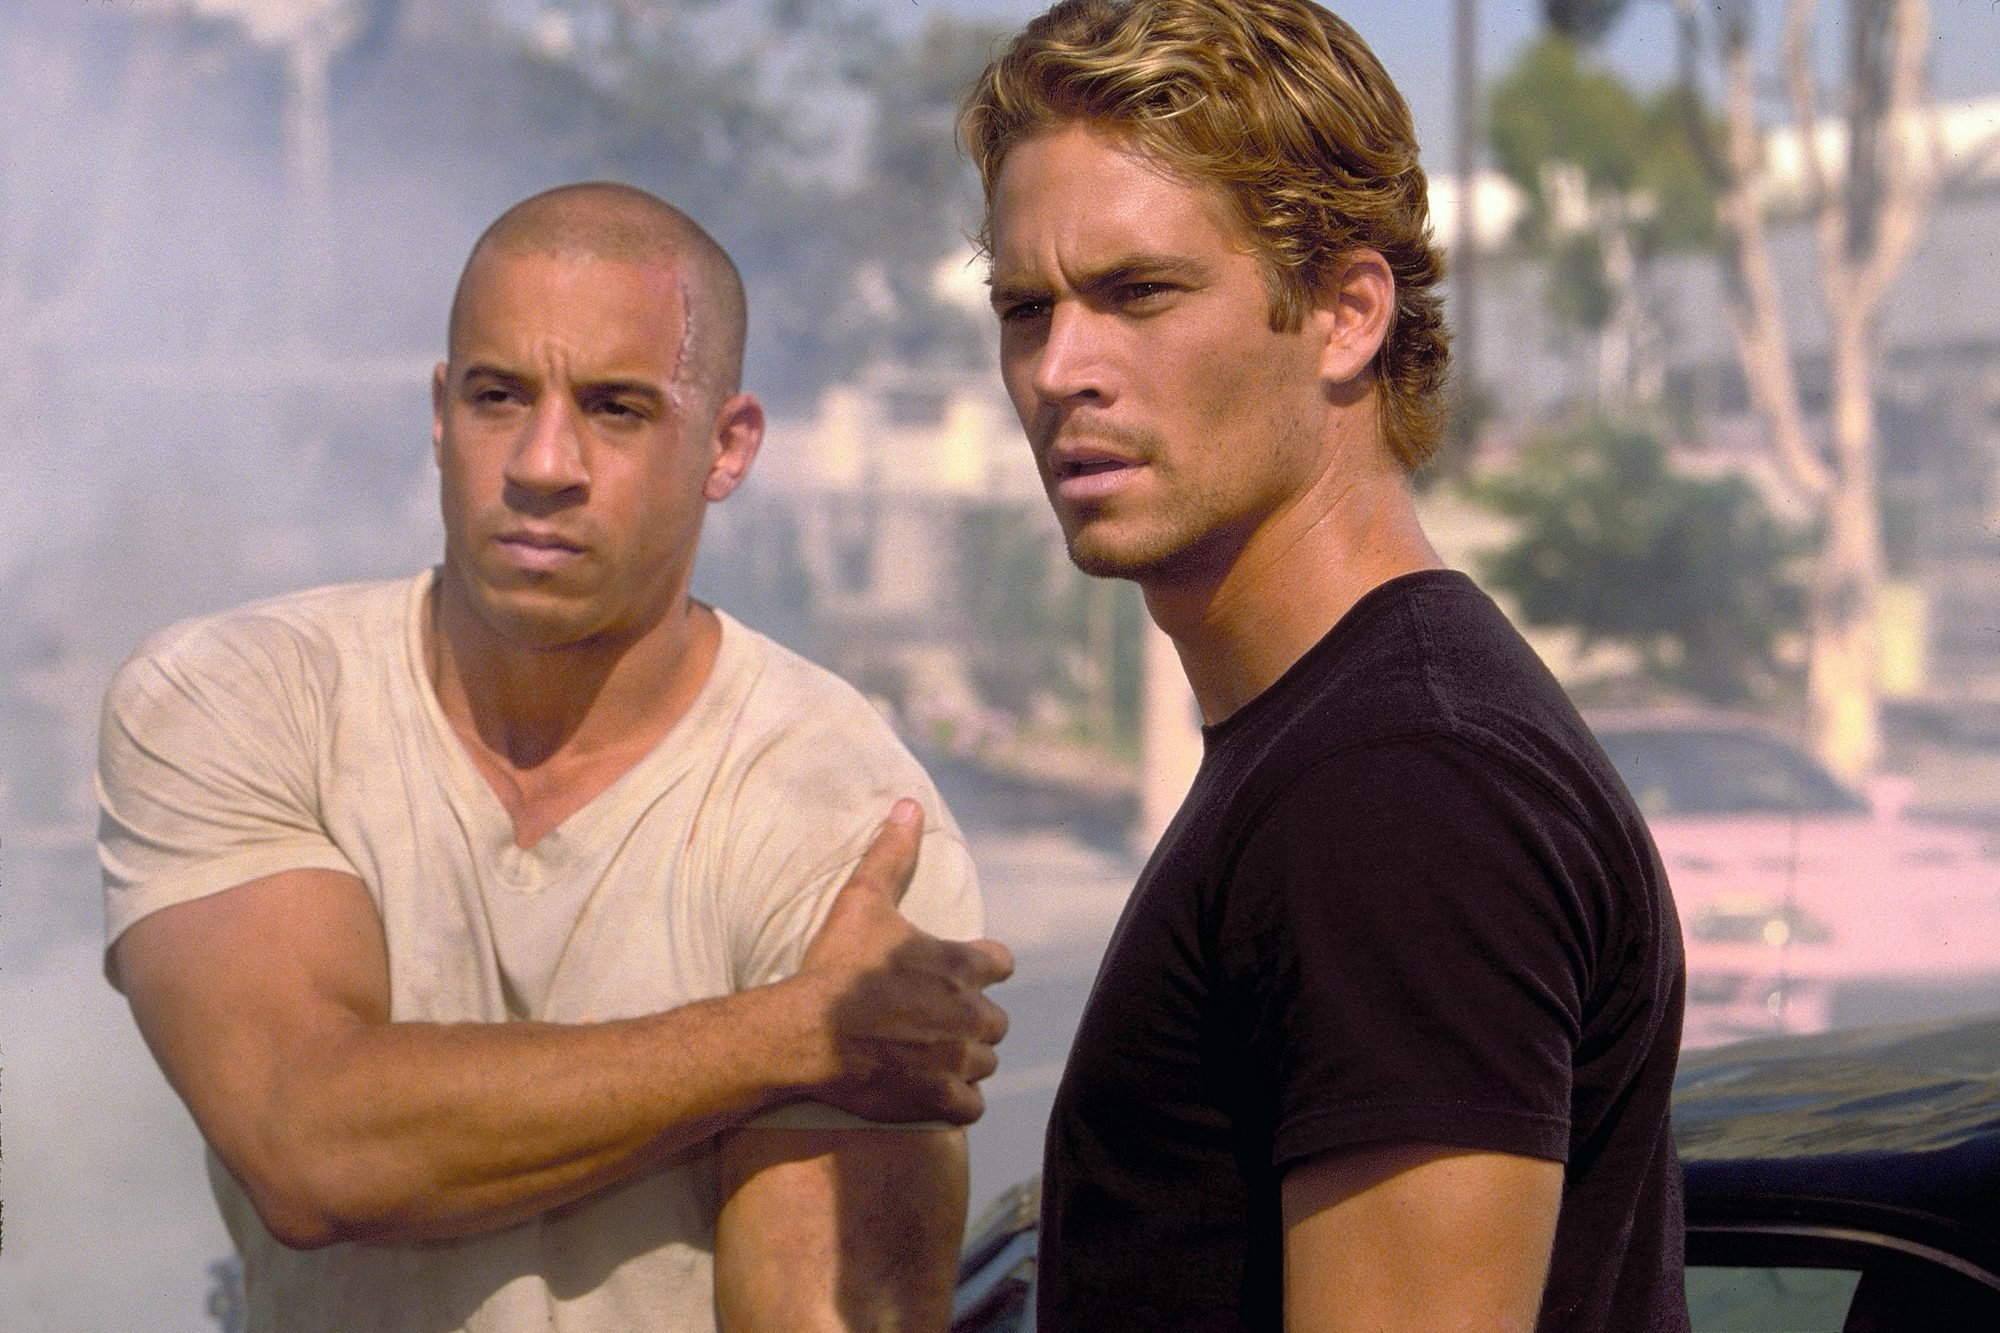 Flashback: The Fast and the Furious